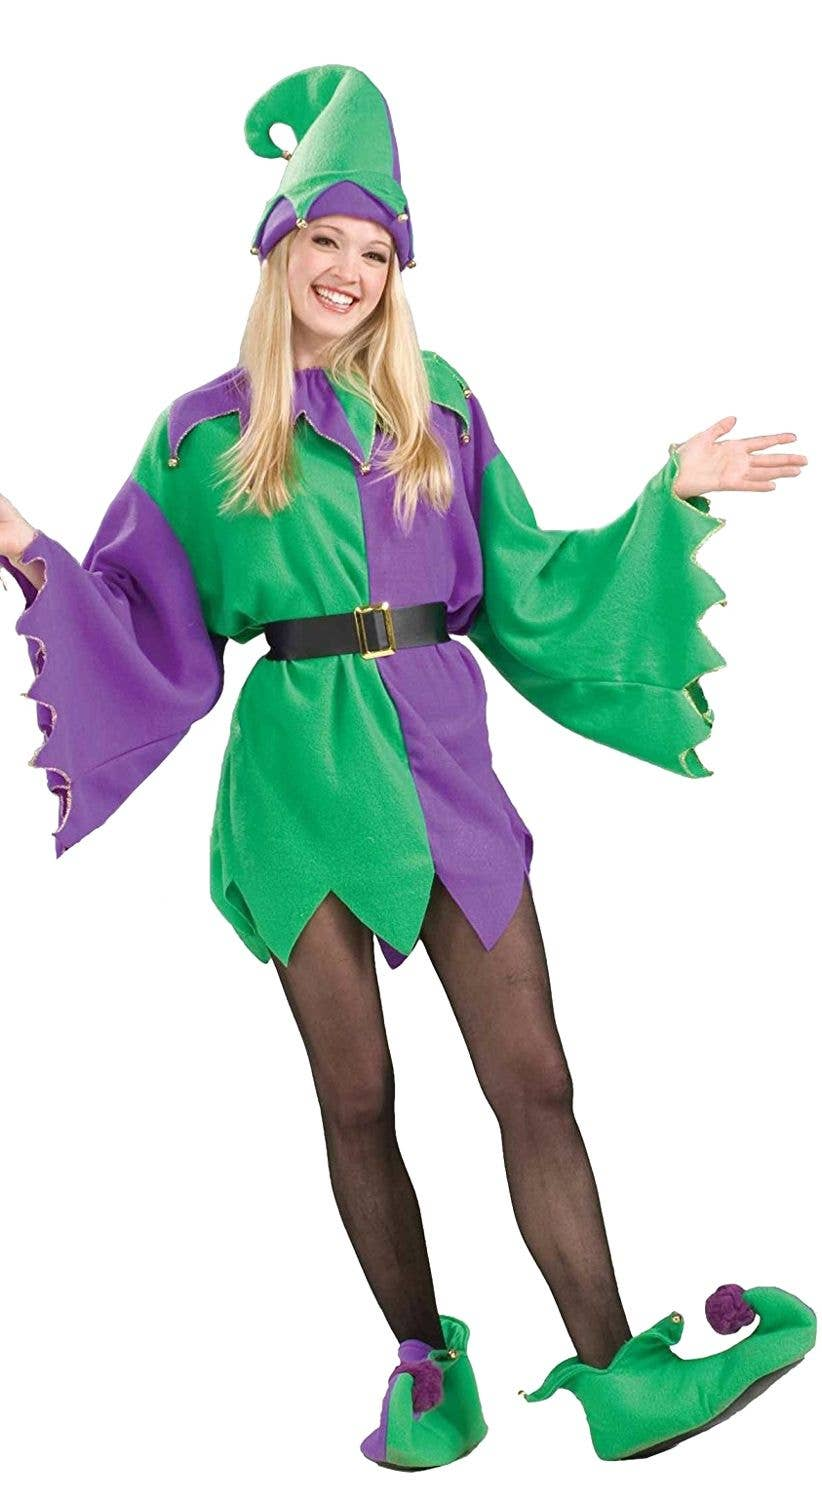 Christmas Elf Costume.Christmas Elf Adult S Unisex Purple And Green Costume